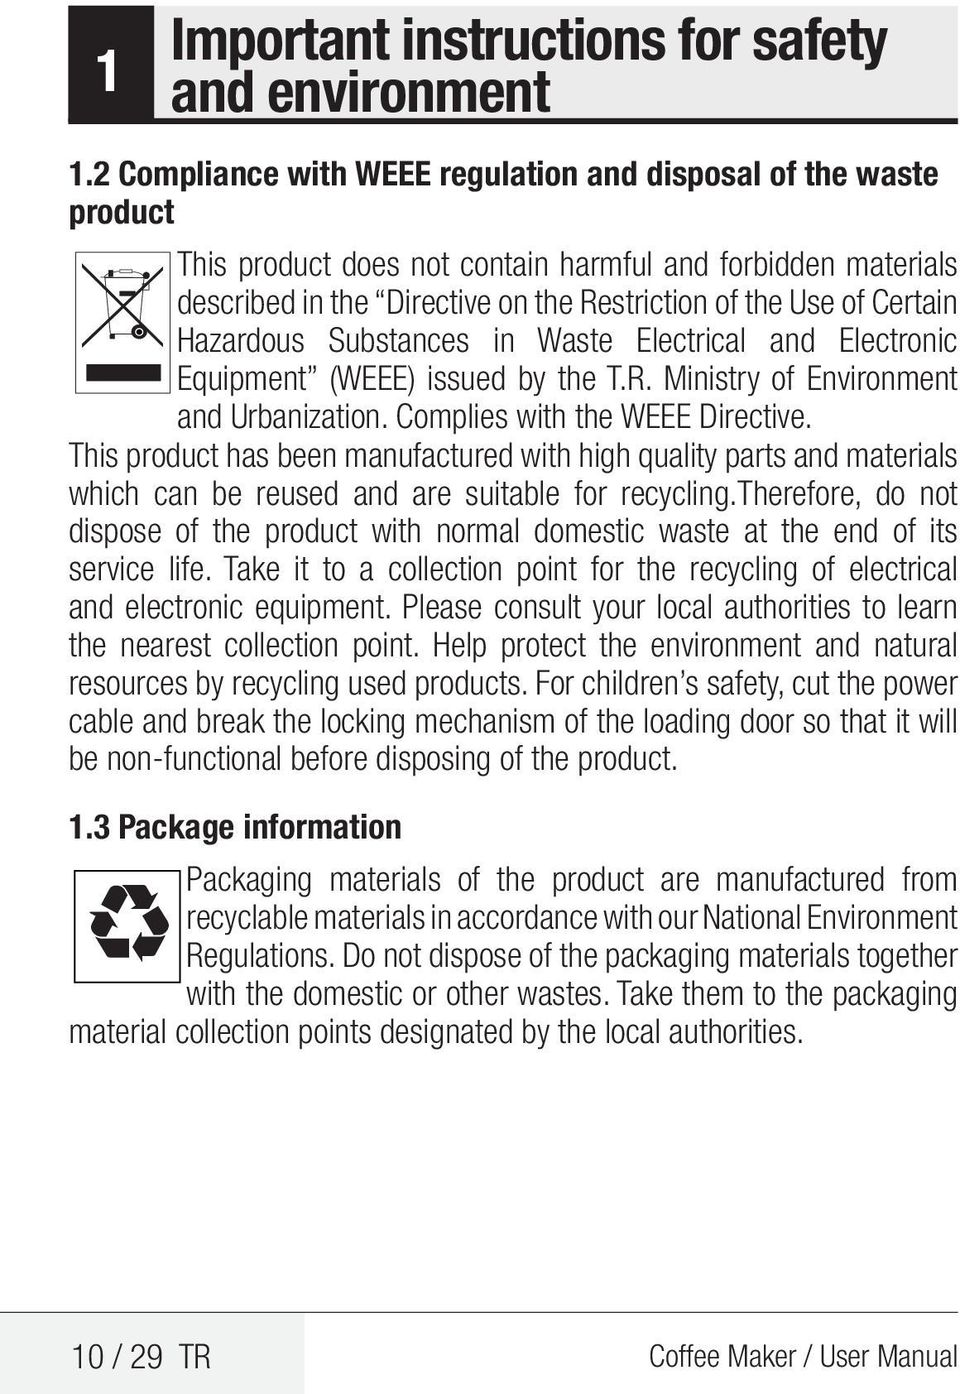 Hazardous Substances in Waste Electrical and Electronic Equipment (WEEE) issued by the T.R. Ministry of Environment and Urbanization. Complies with the WEEE Directive.